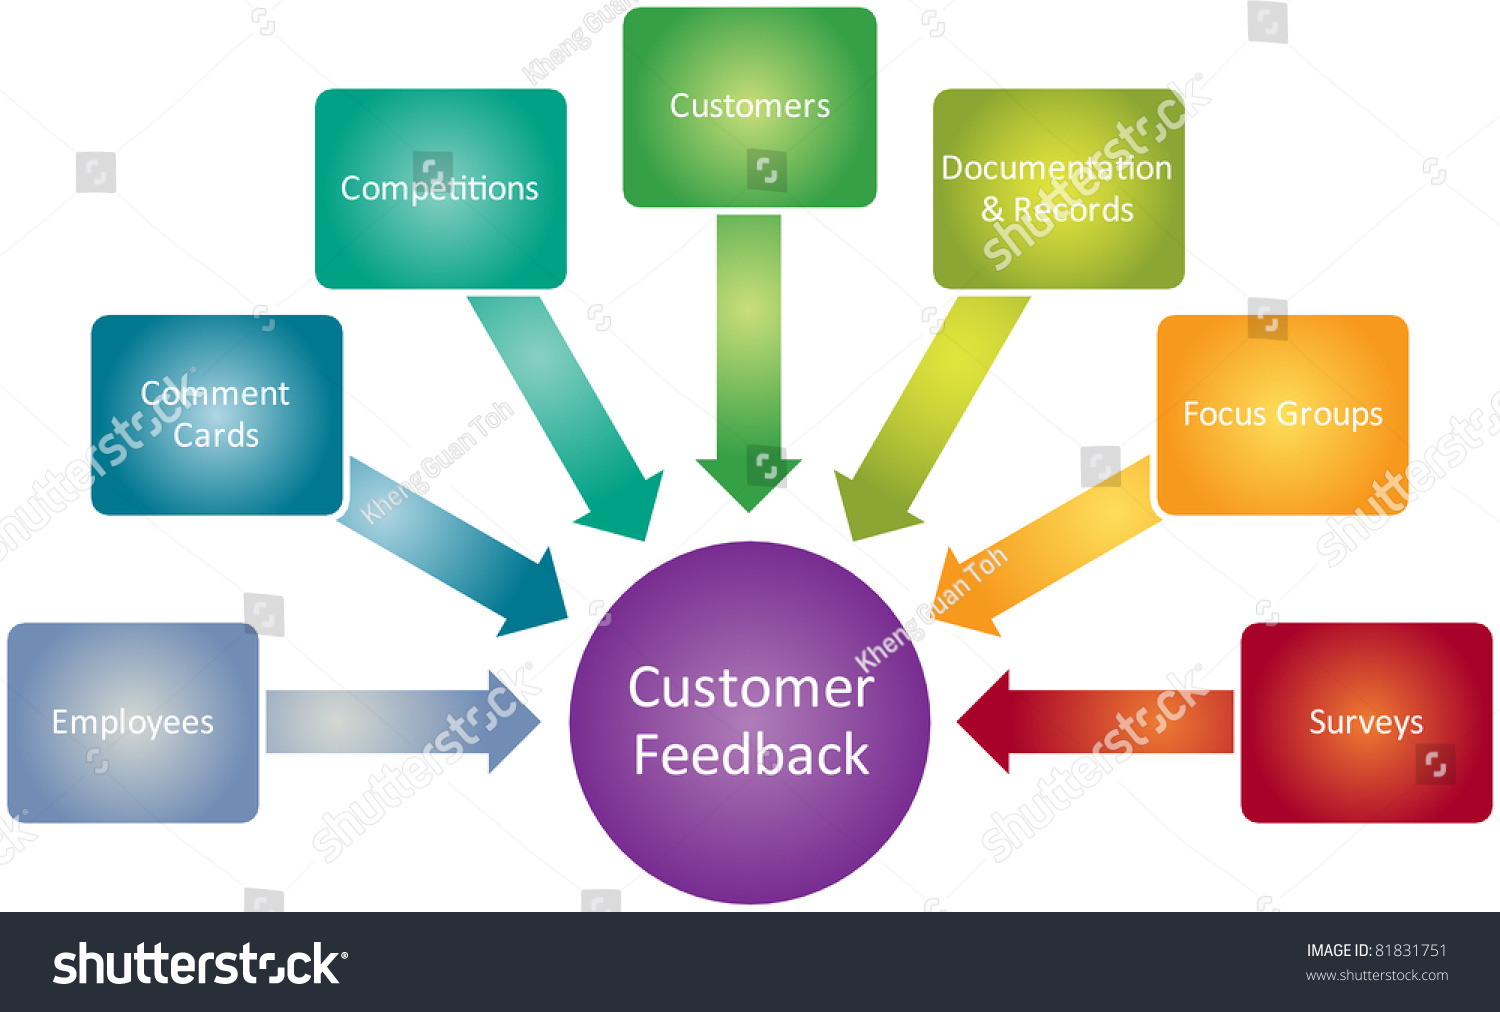 customer feedback business diagram management strategy concept    save to a lightbox